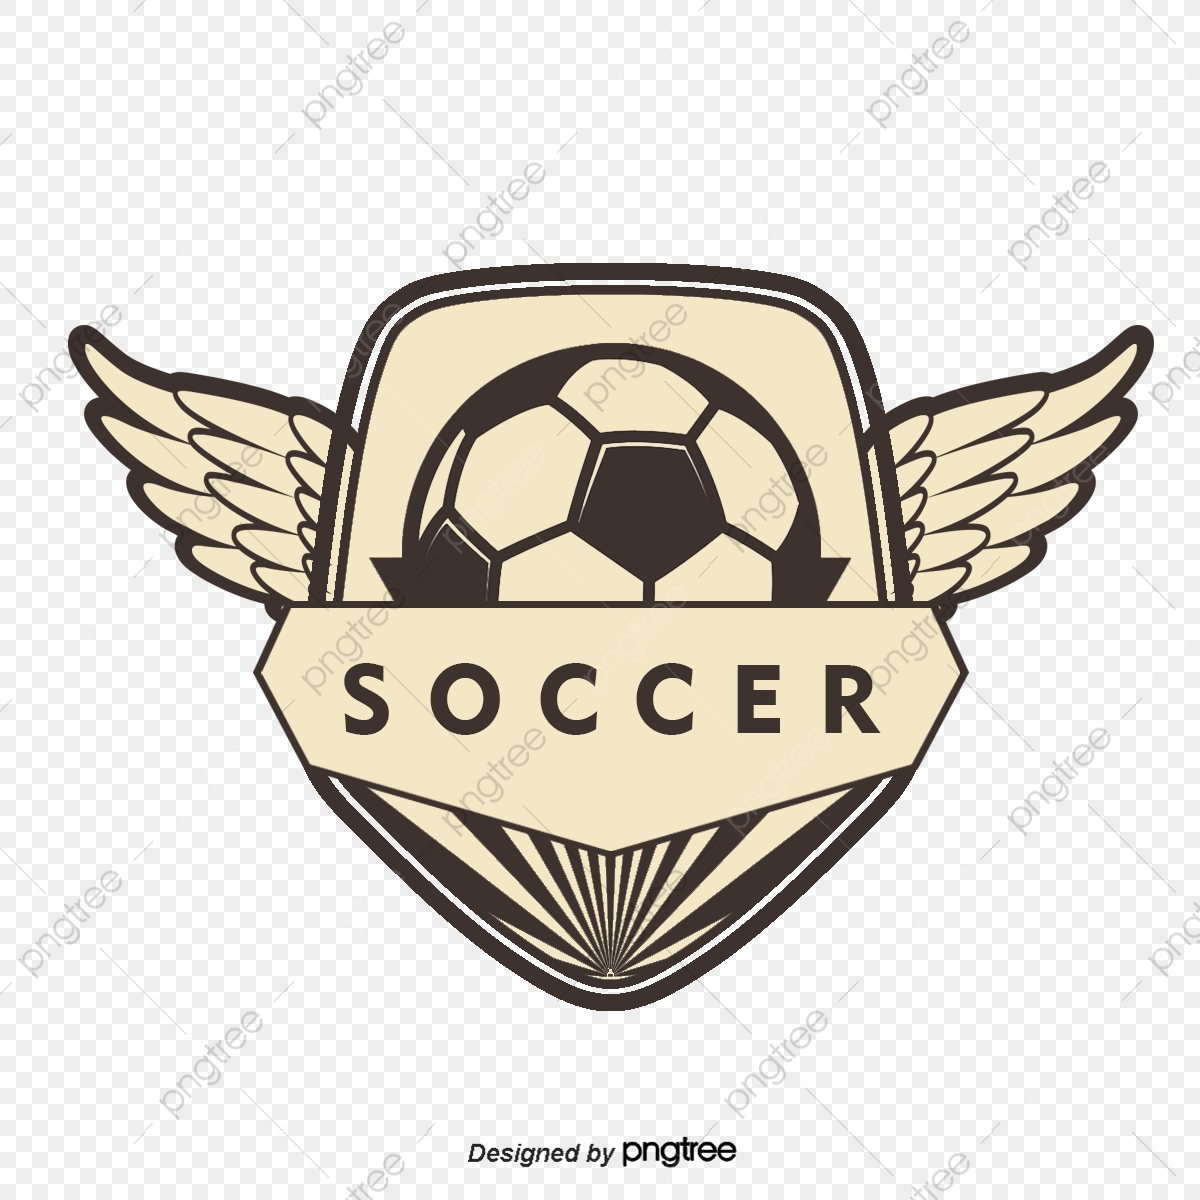 Football Club Identity, Clipart, Football, Identity PNG and Vector.